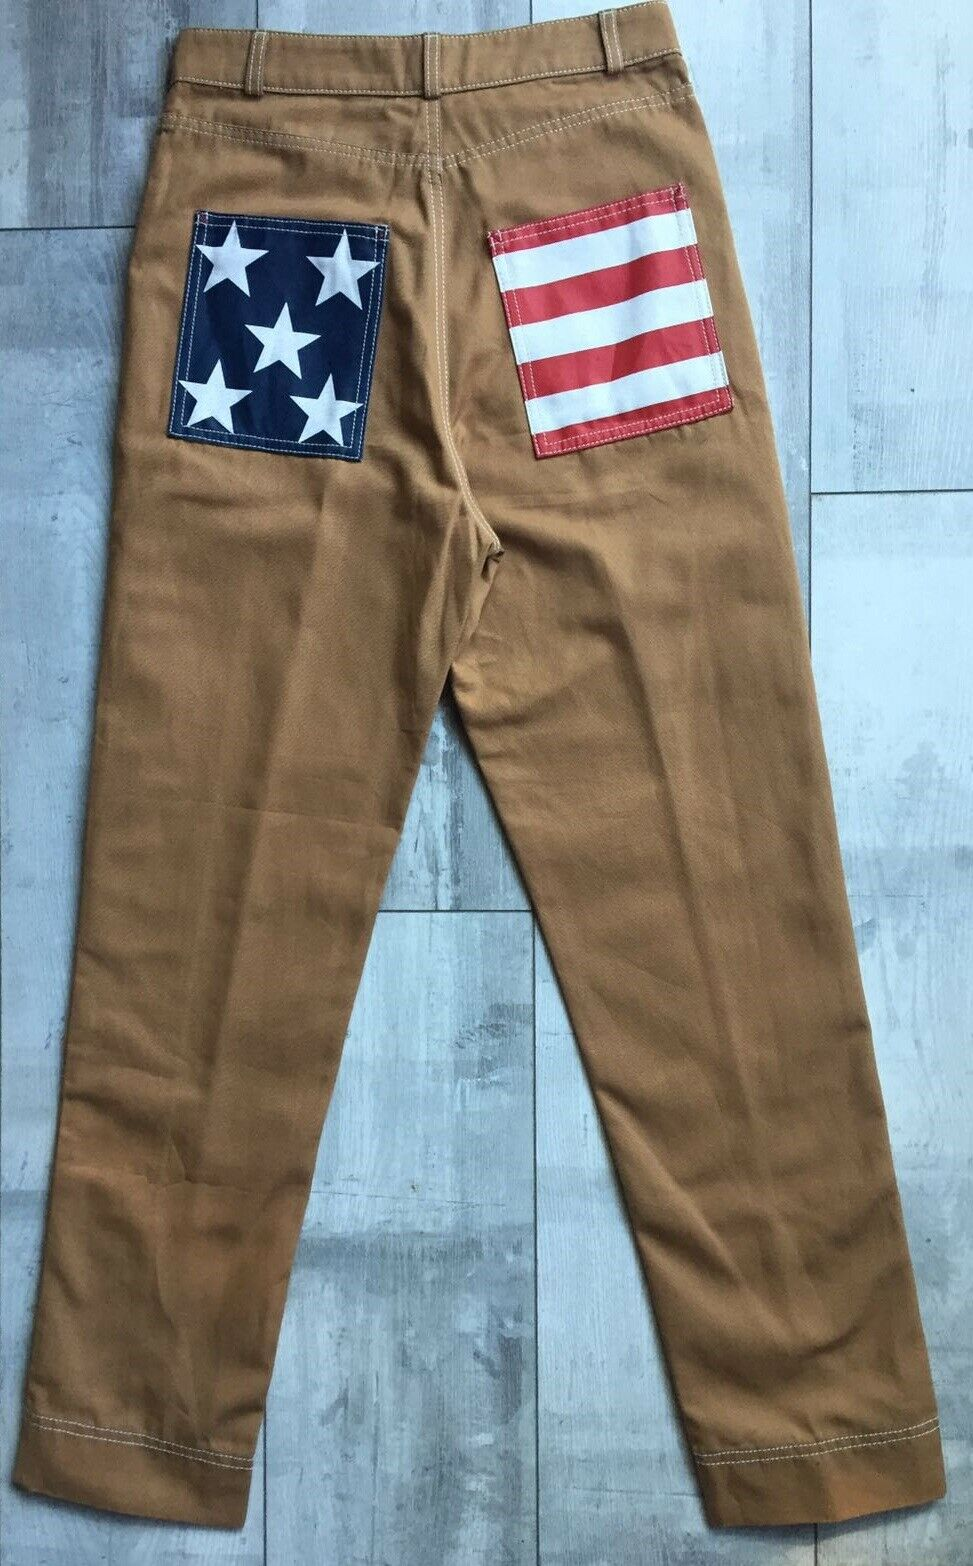 HILFIGER COLLECTION TOBACCO COTTON UTILITY WORKWEAR PANTS ITALY US4 S